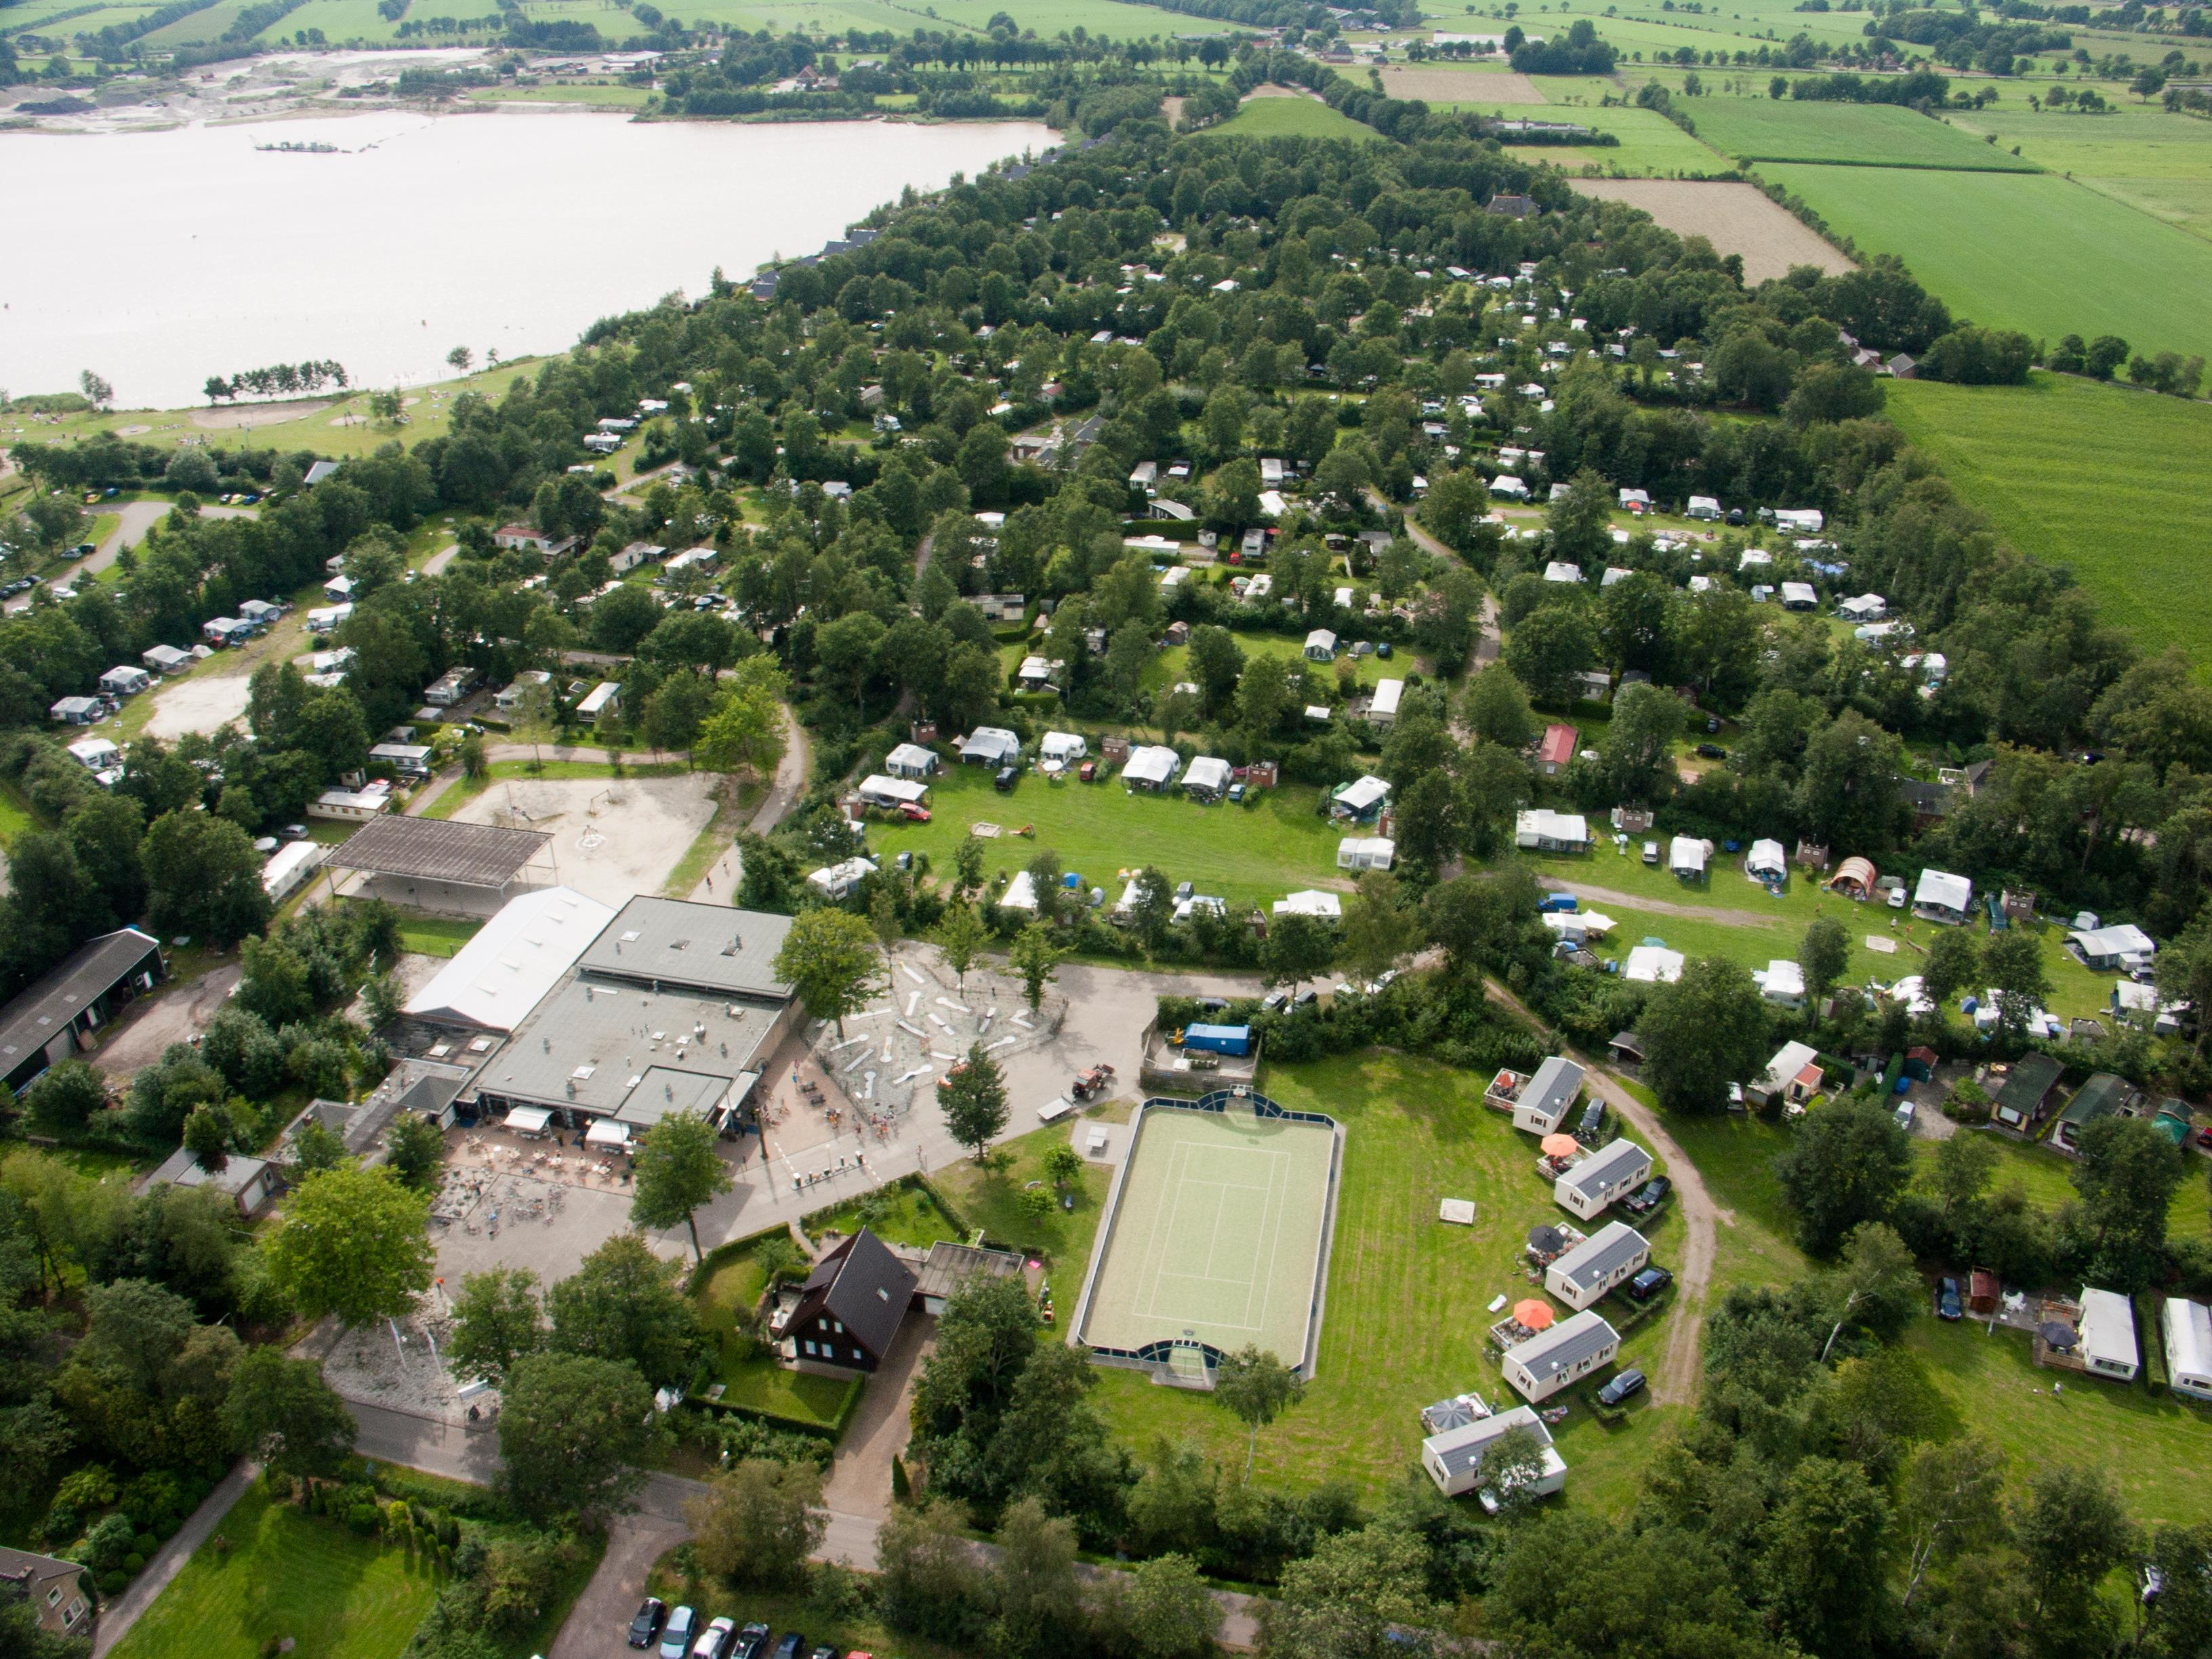 Establishment Camping 'T Strandheem - Opende